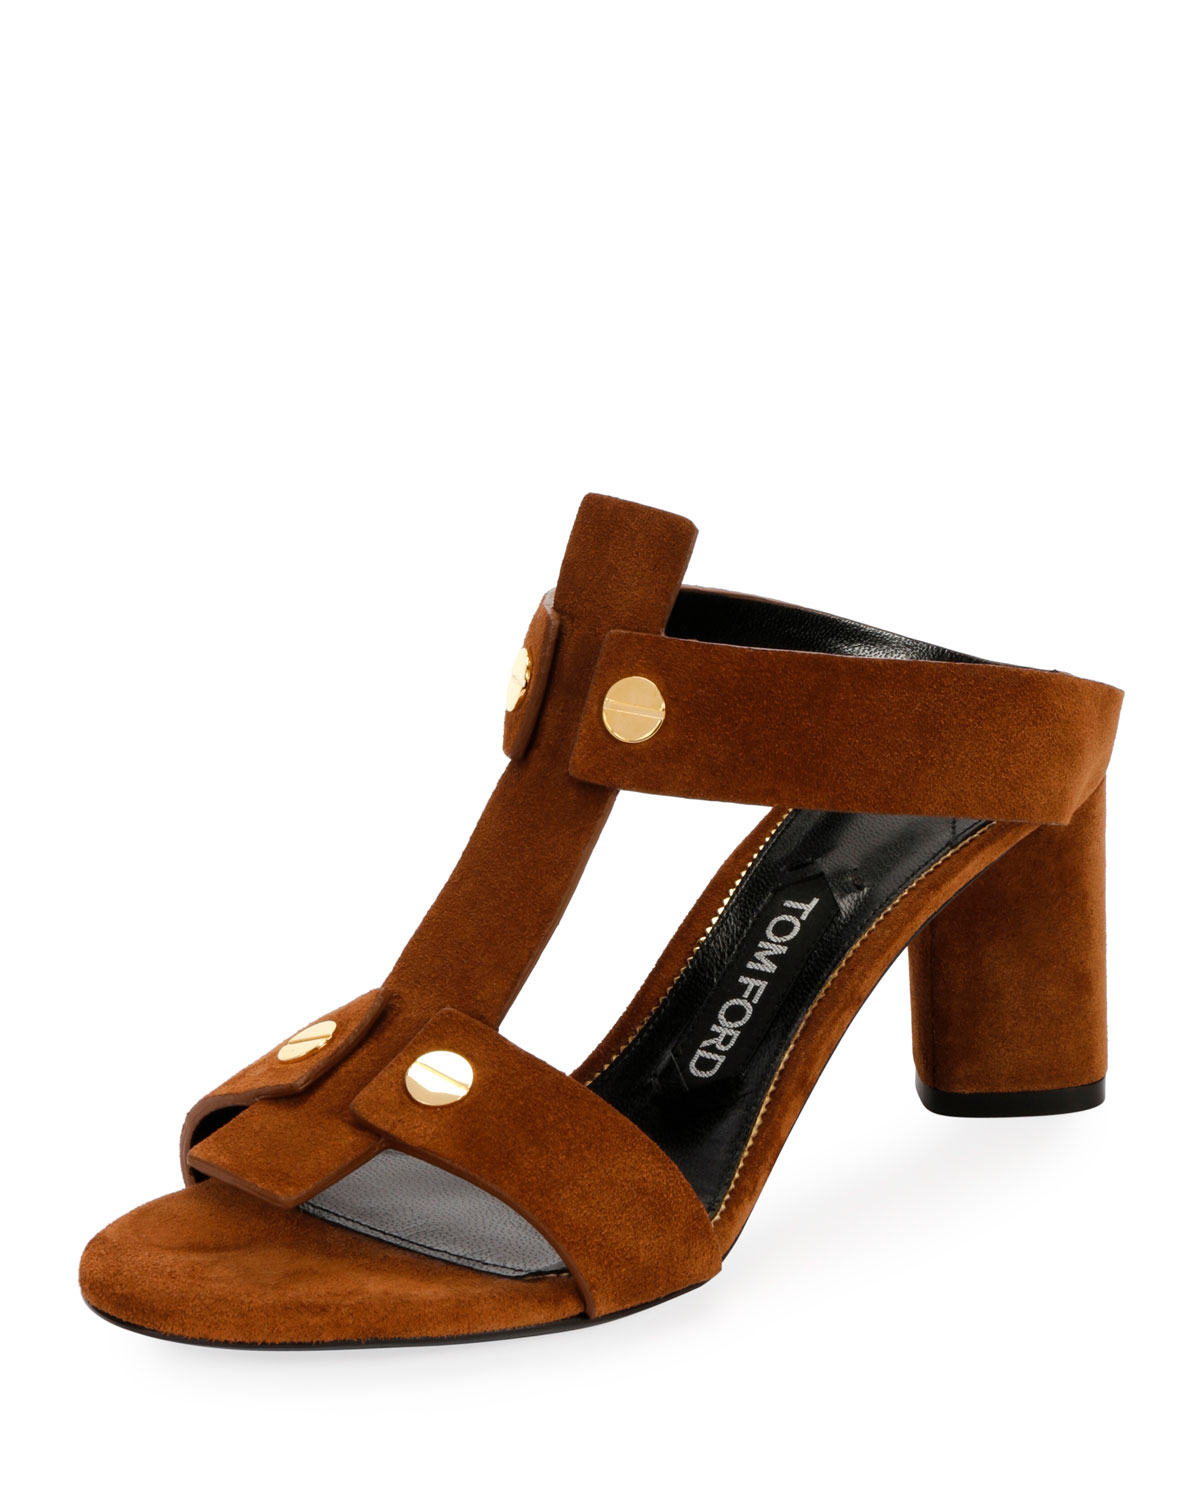 b1d1a0d8add8e6 TOM FORD Suede T-Caged 65mm Sandal